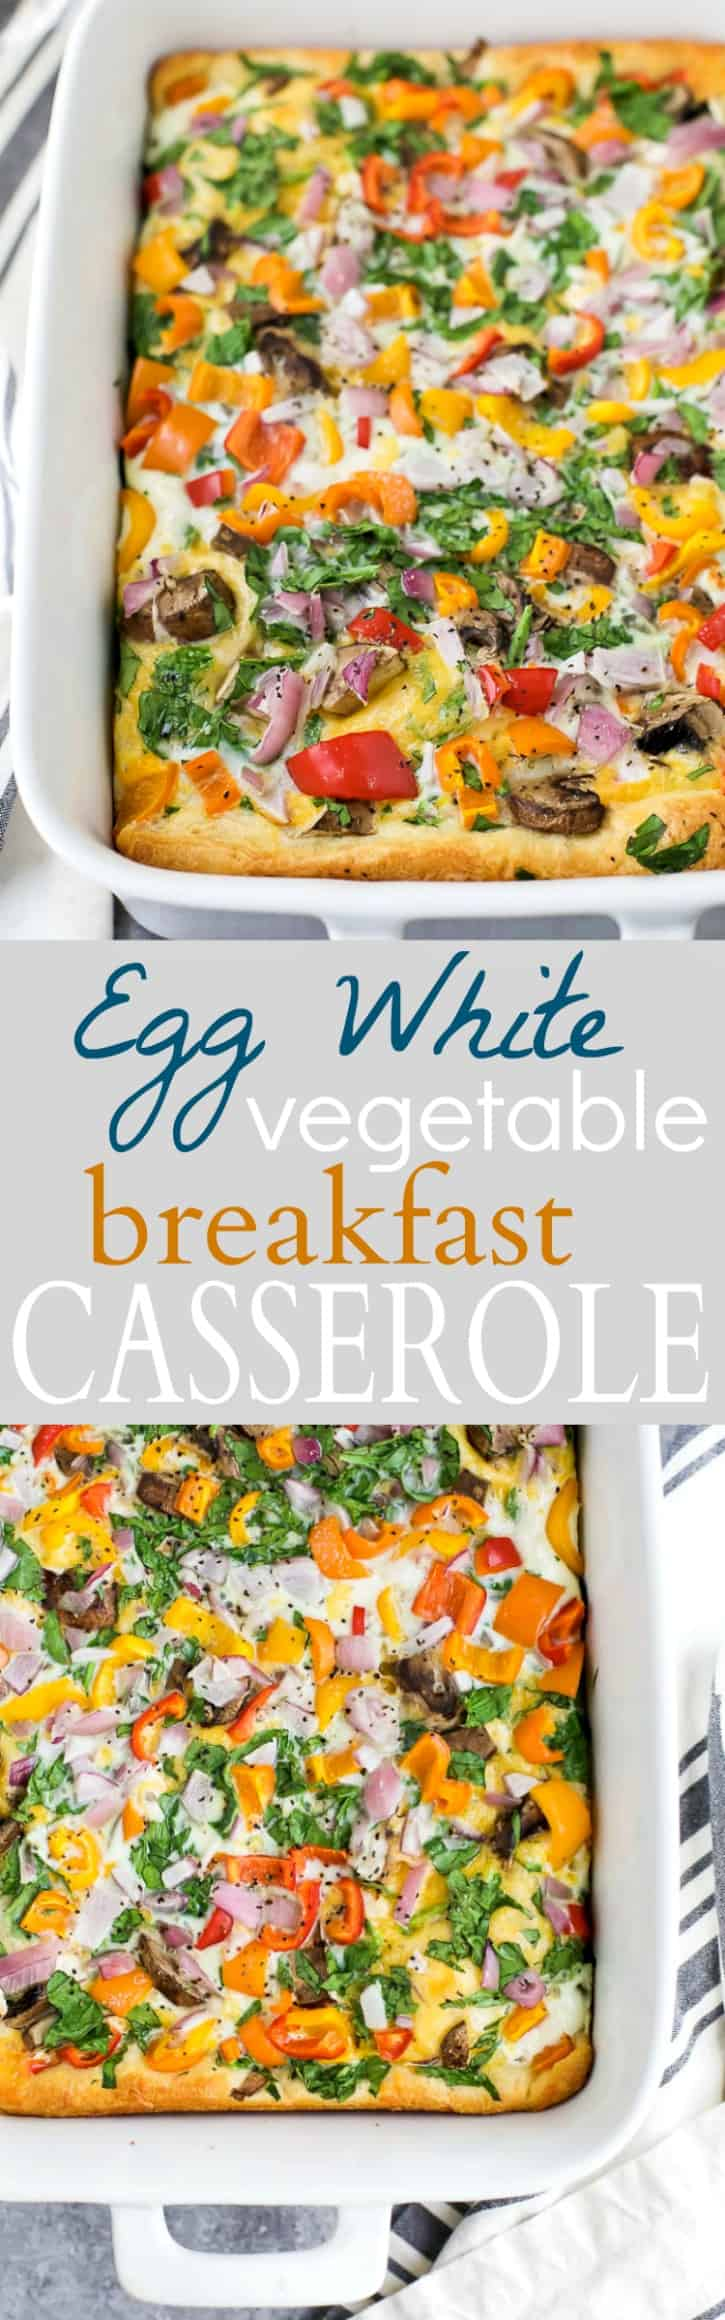 Egg White Vegetable Breakfast Casserole Easy Healthy Recipes